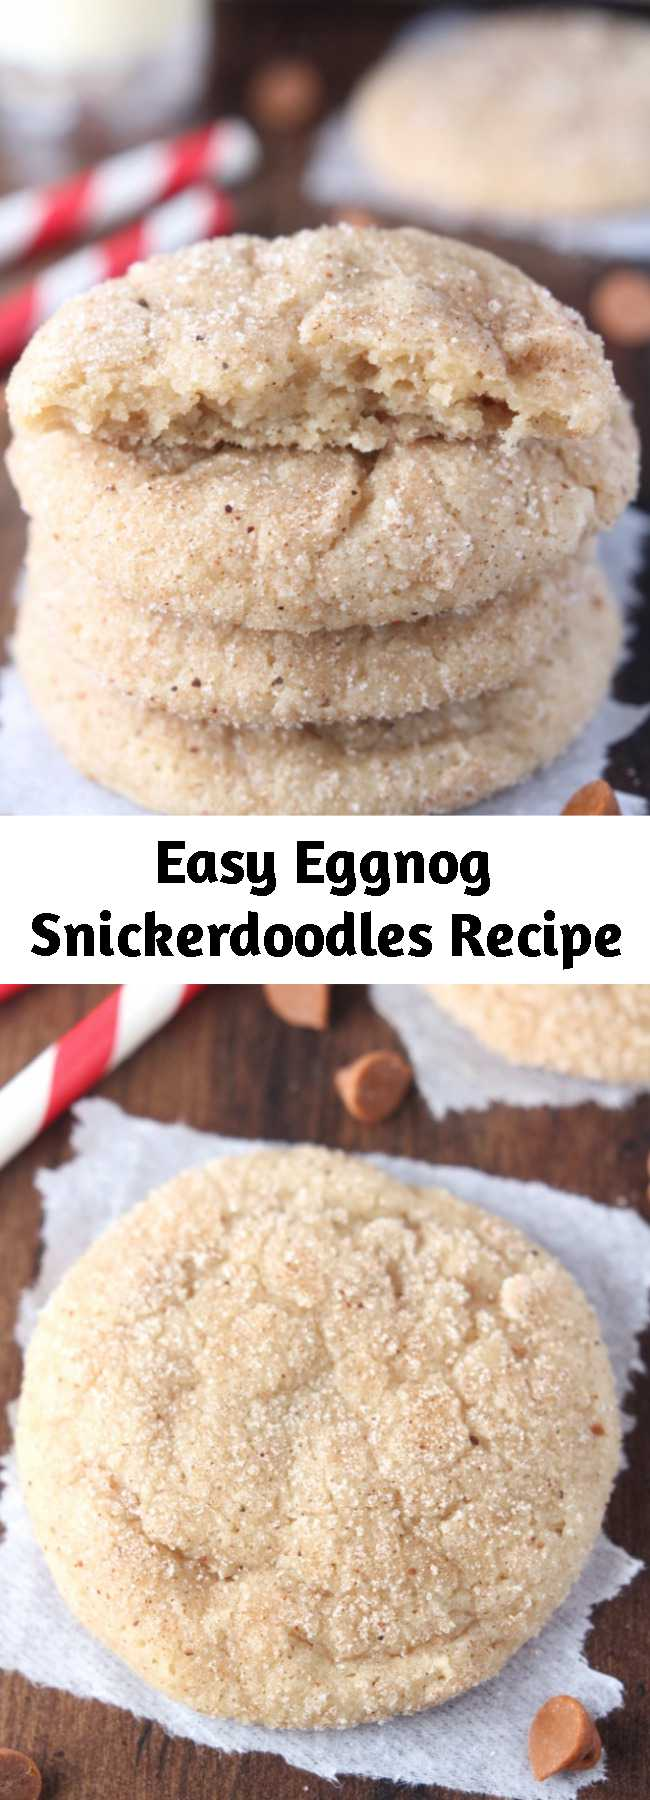 Easy Eggnog Snickerdoodles Recipe - The prominent eggnog flavor in these cookies is really festive for the holiday season! They're incredibly soft and chewy, and they'll stay that way for a week if stored in an airtight container—if they last that long!